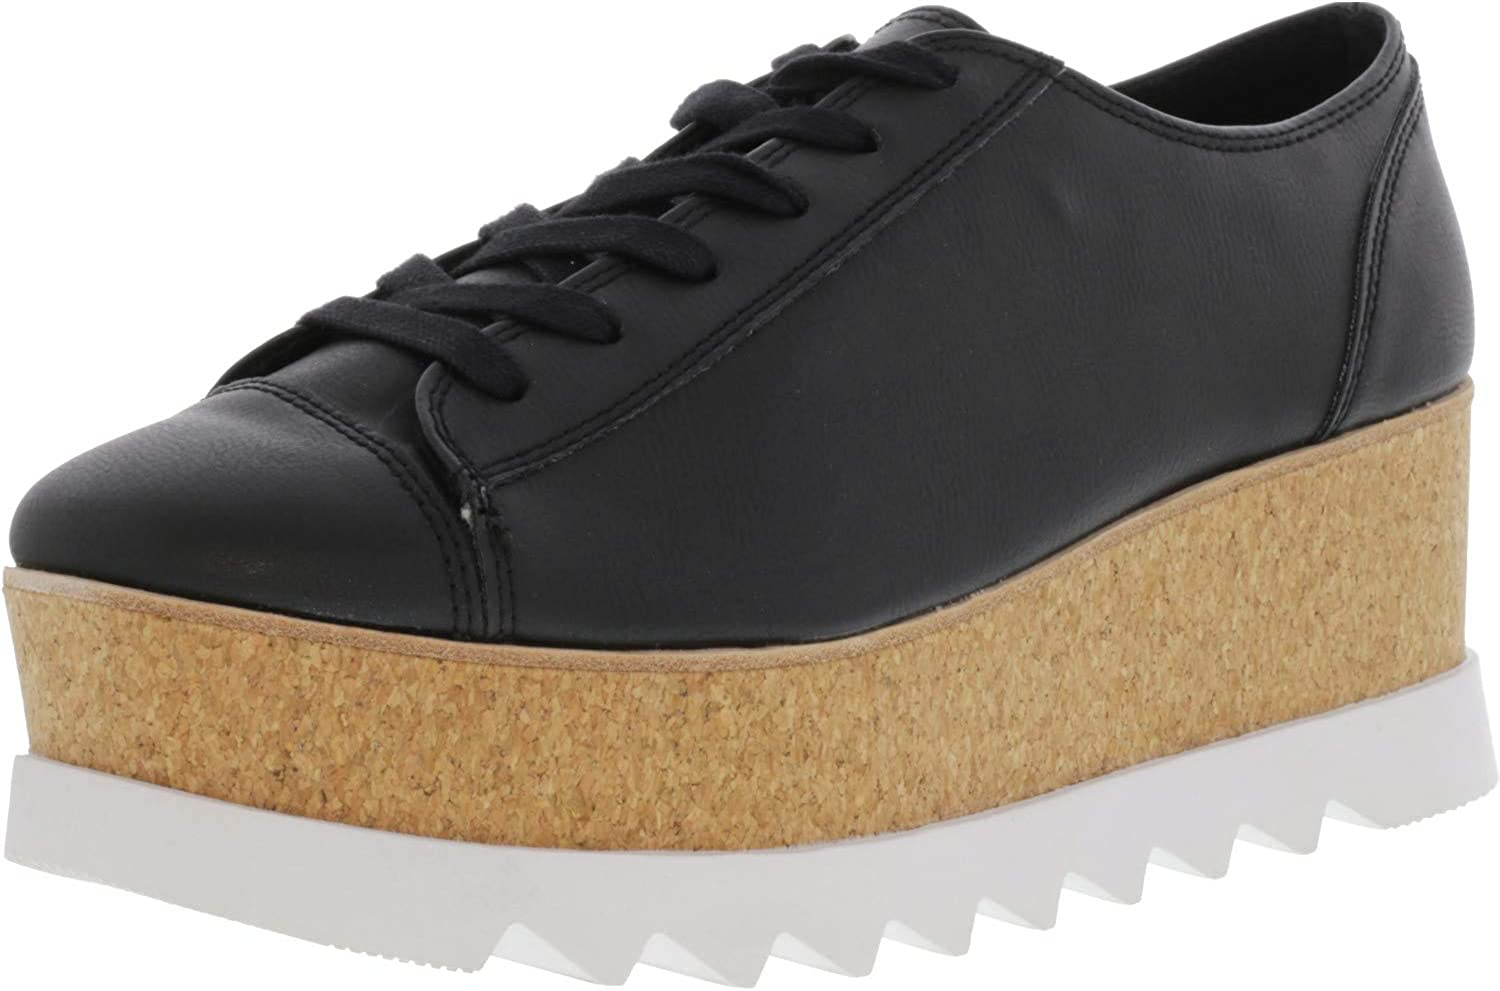 Steve Madden Women's Kelani Ankle-High Fashion Sneaker